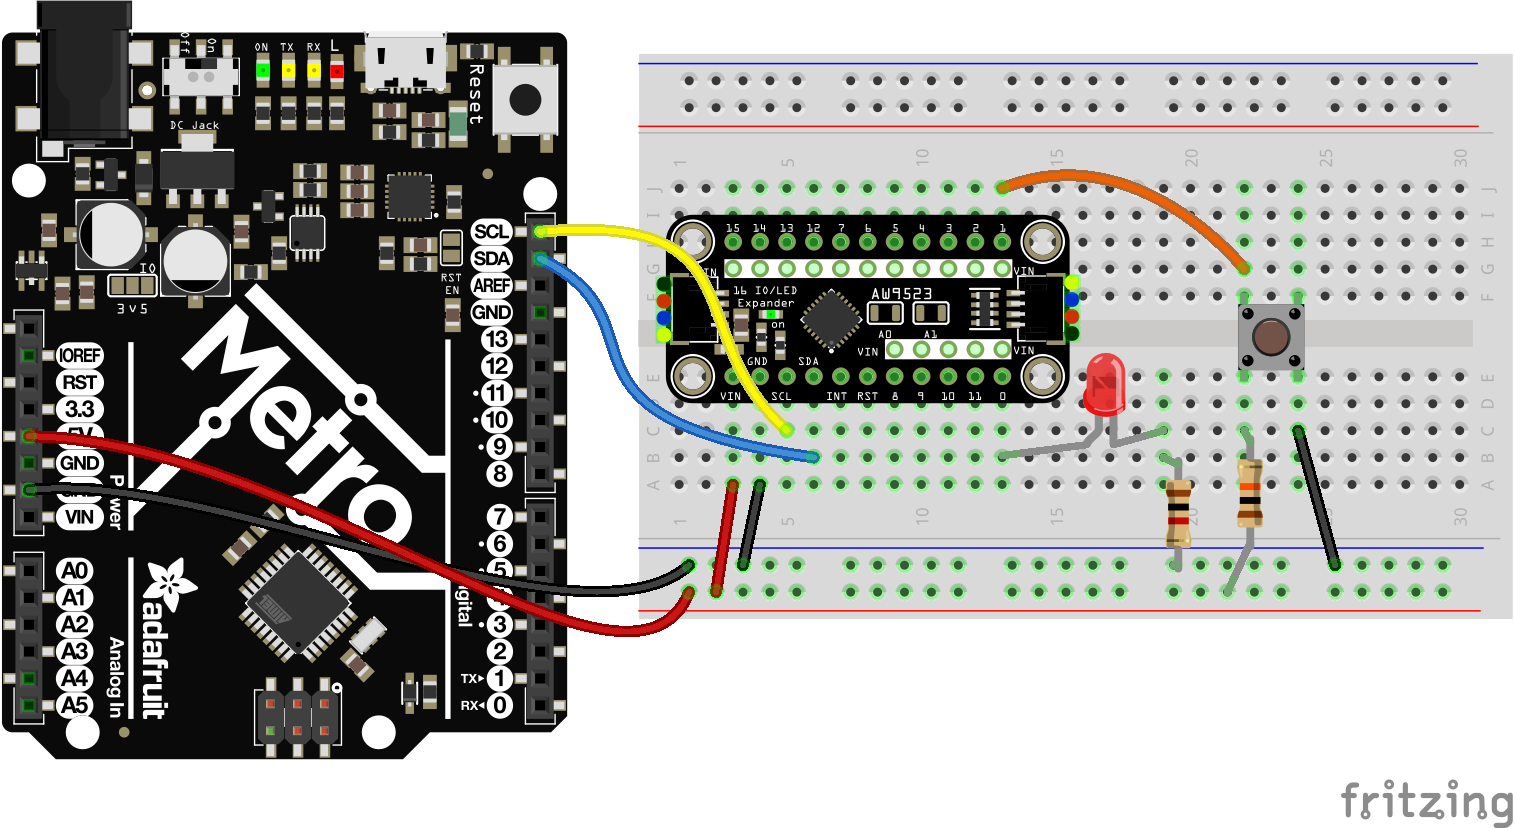 adafruit_products_AW9523_Arduino_LED_button_bb.png